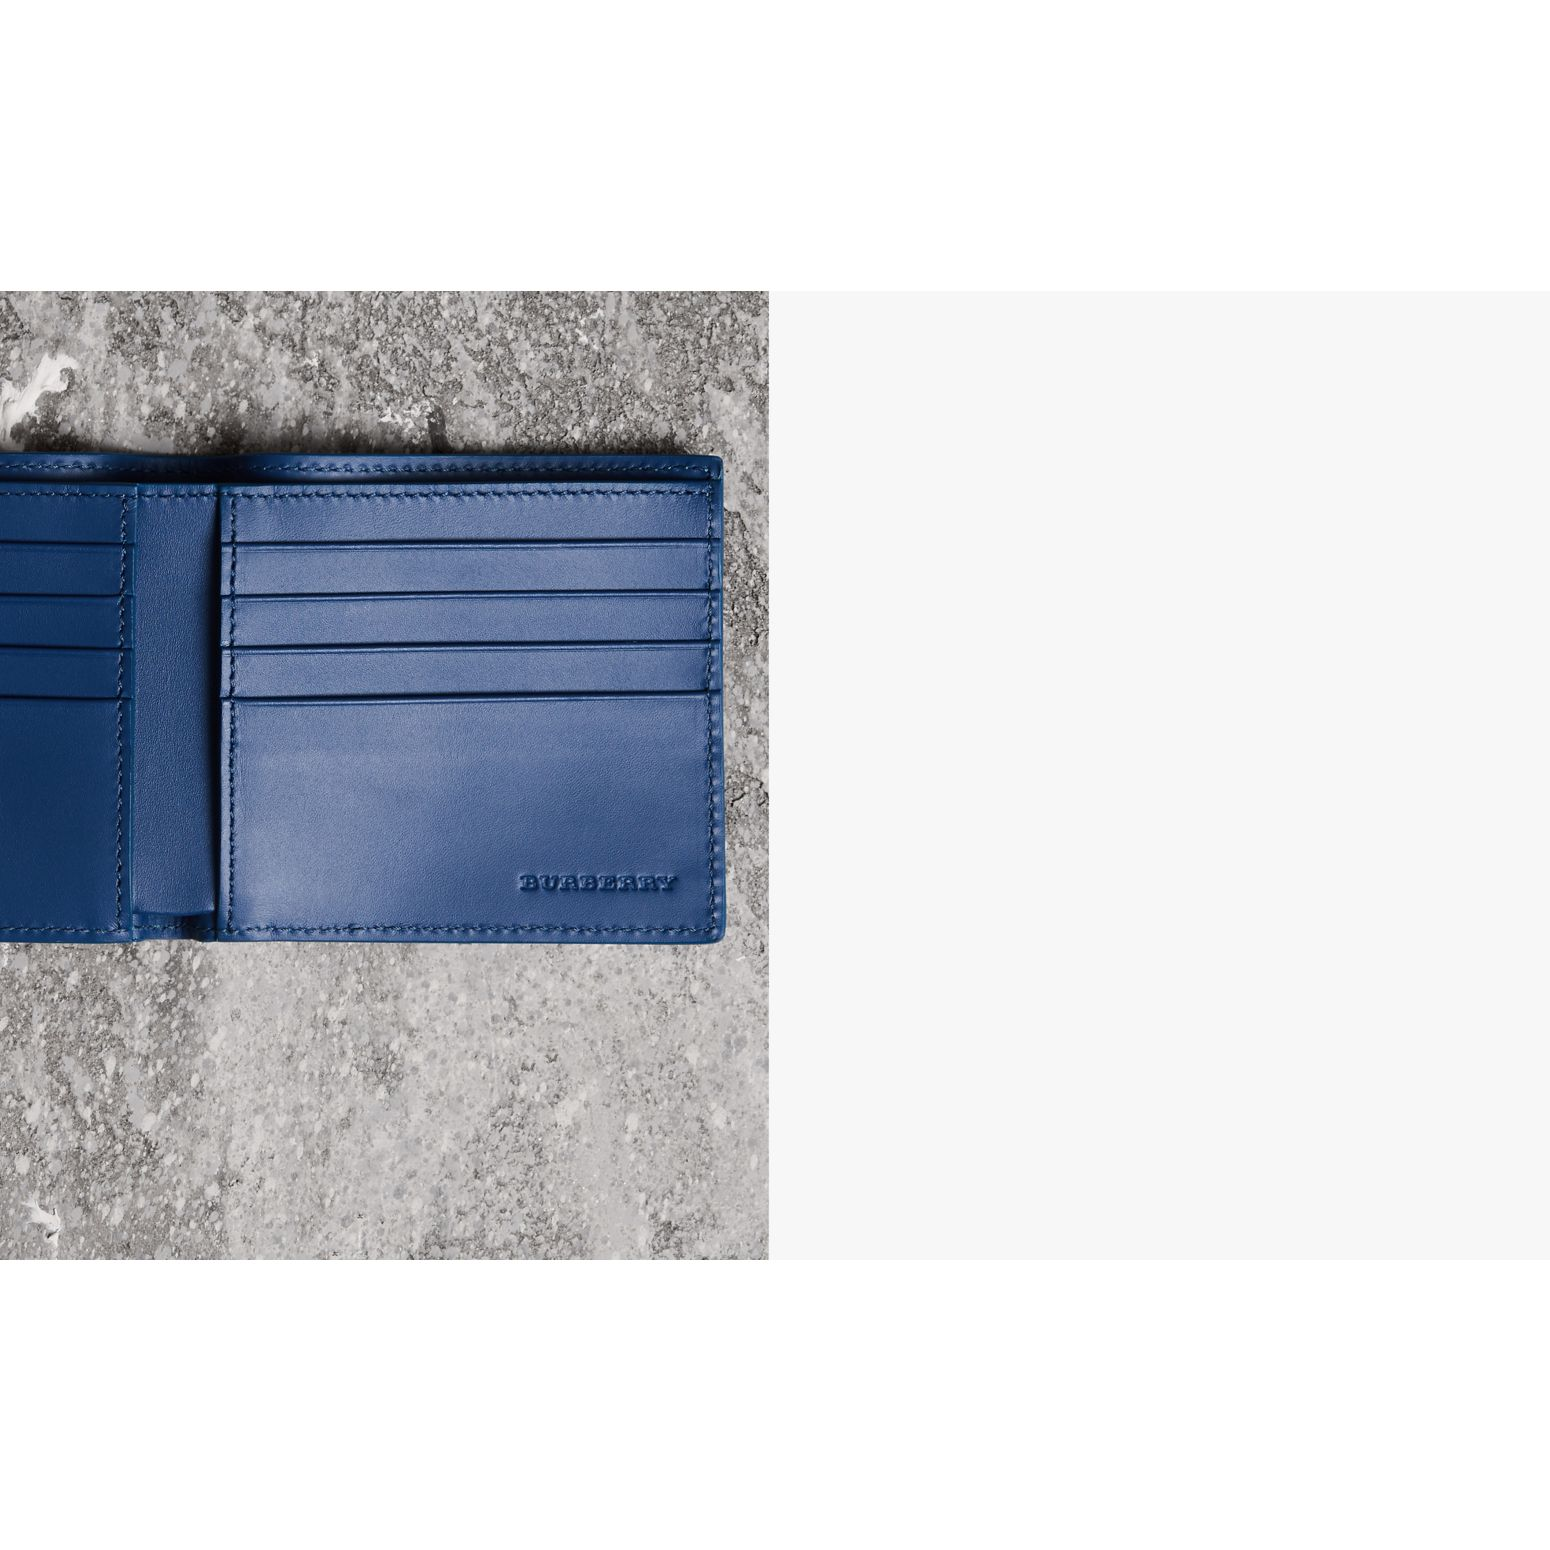 Grainy Leather International Bifold Wallet in Bright Ultramarine - Men | Burberry United Kingdom - gallery image 1